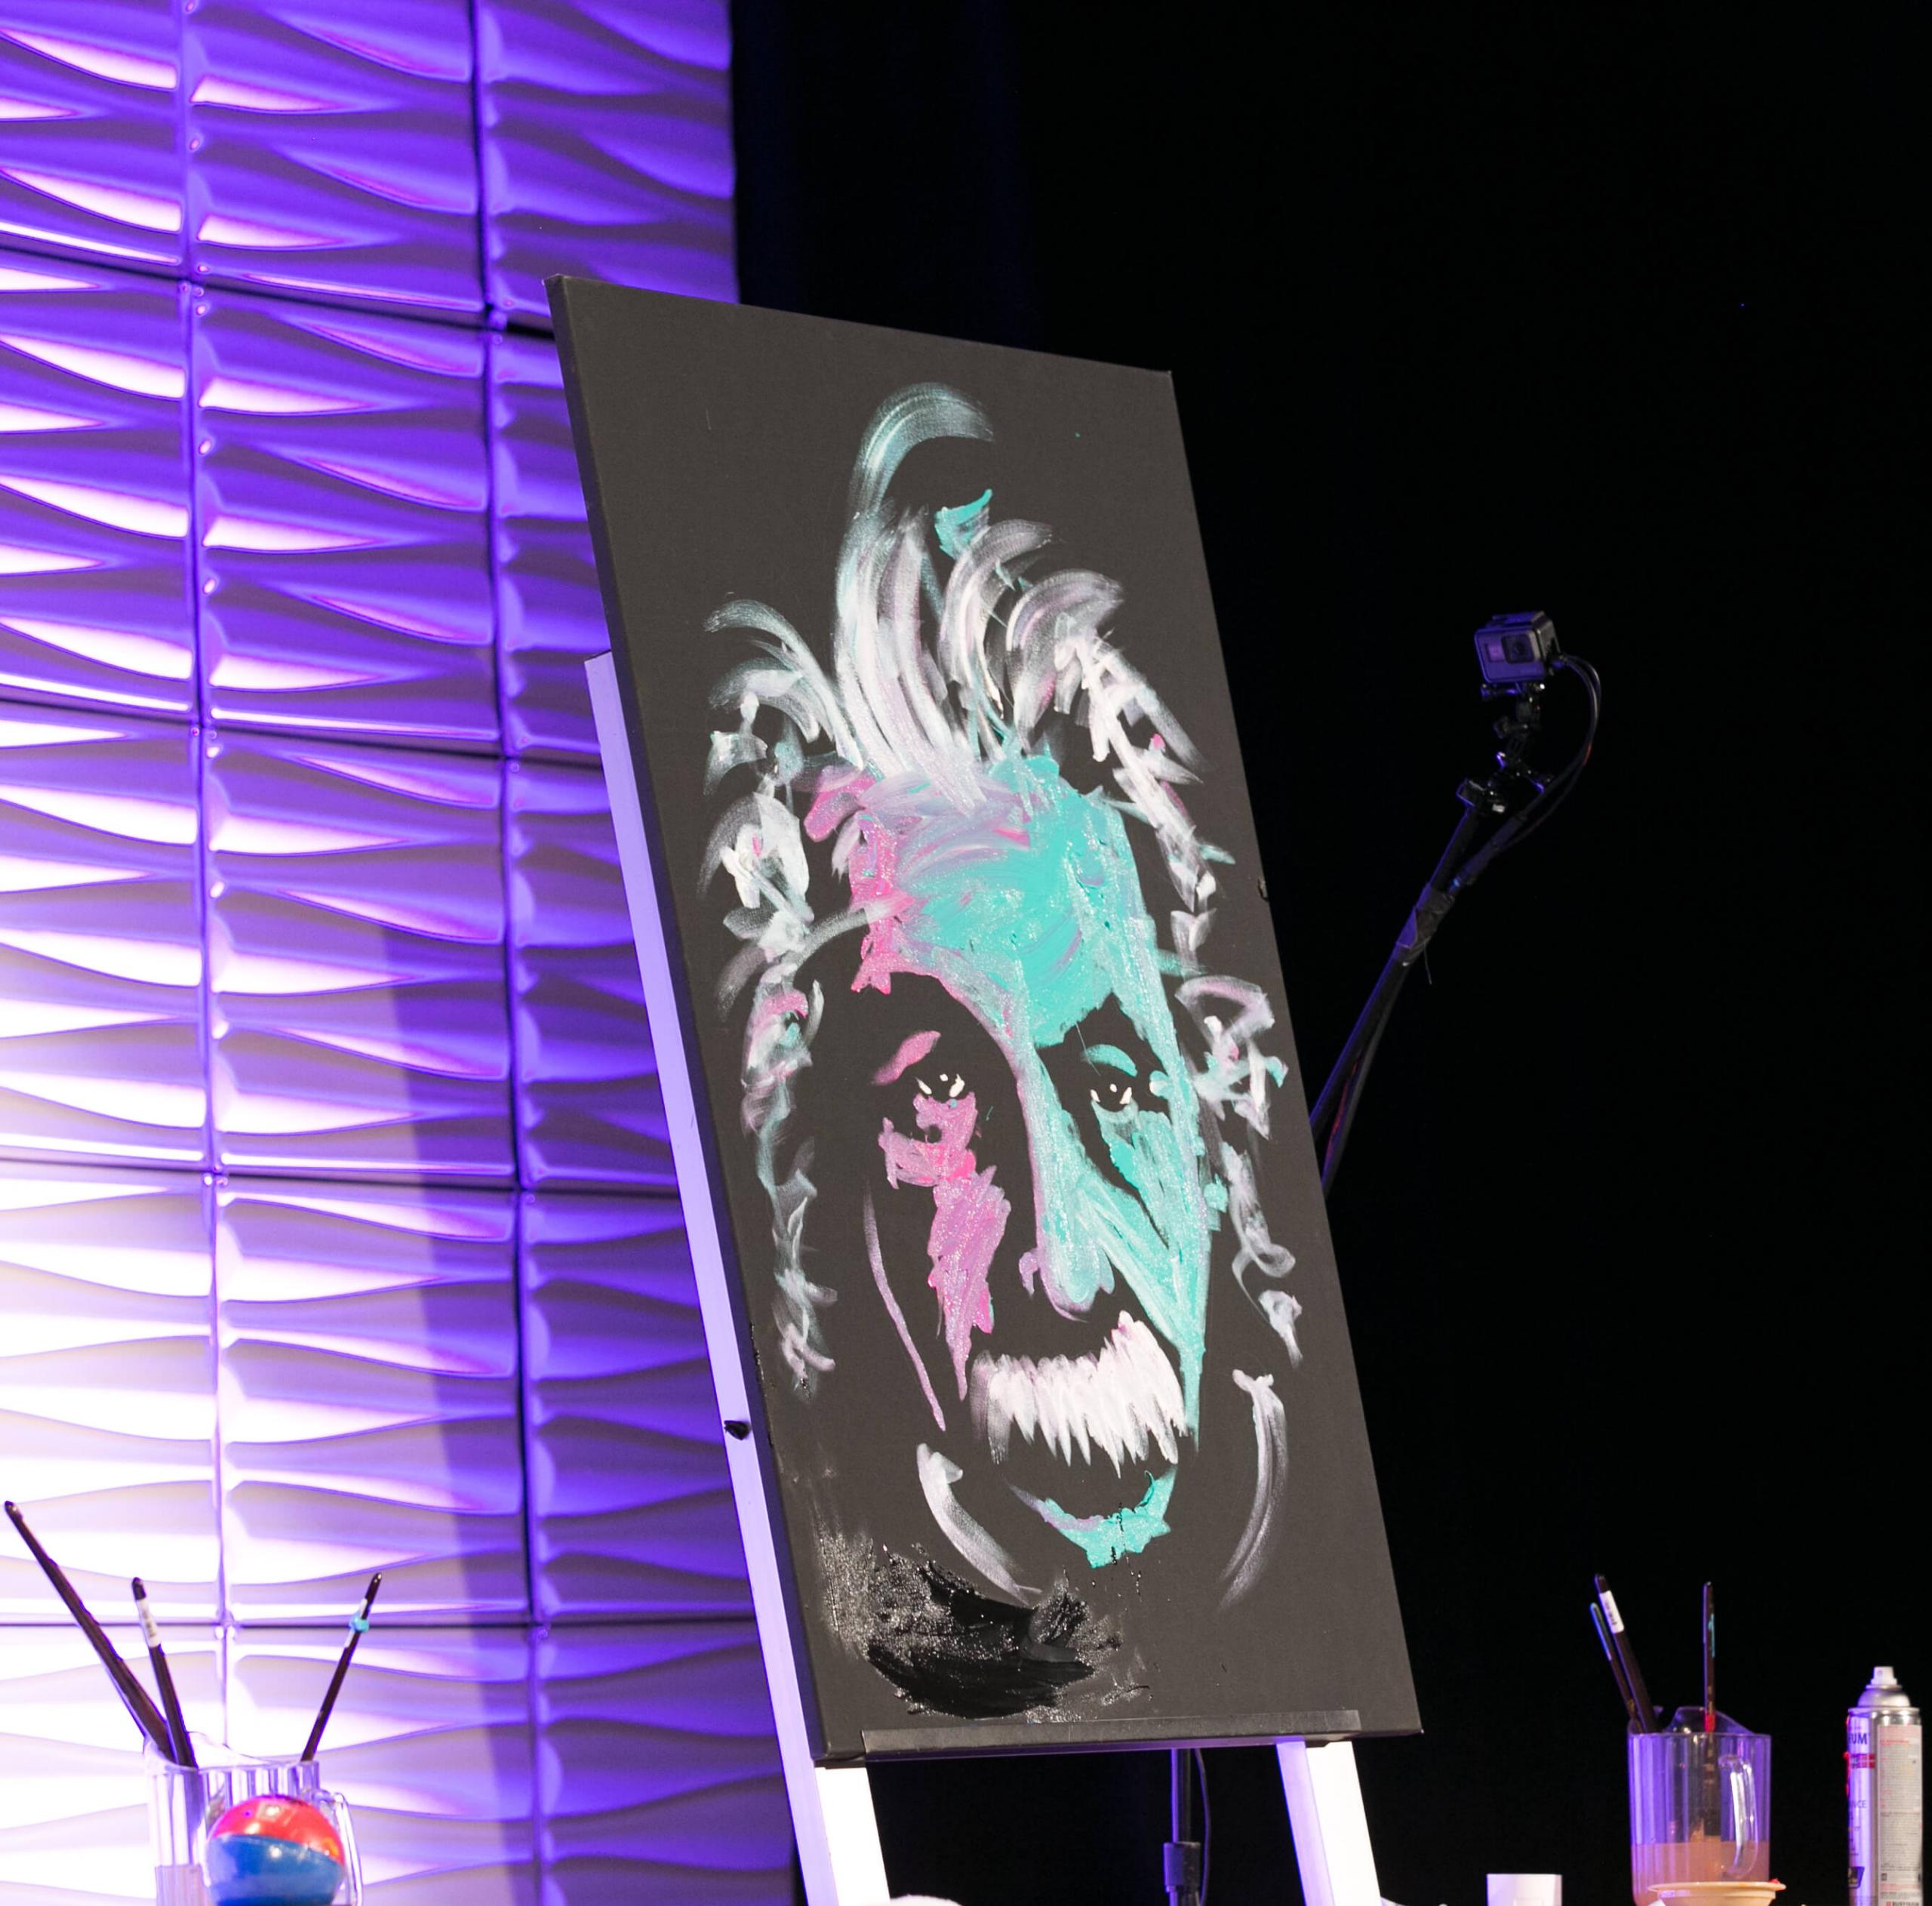 an einstein painting at a watermark event